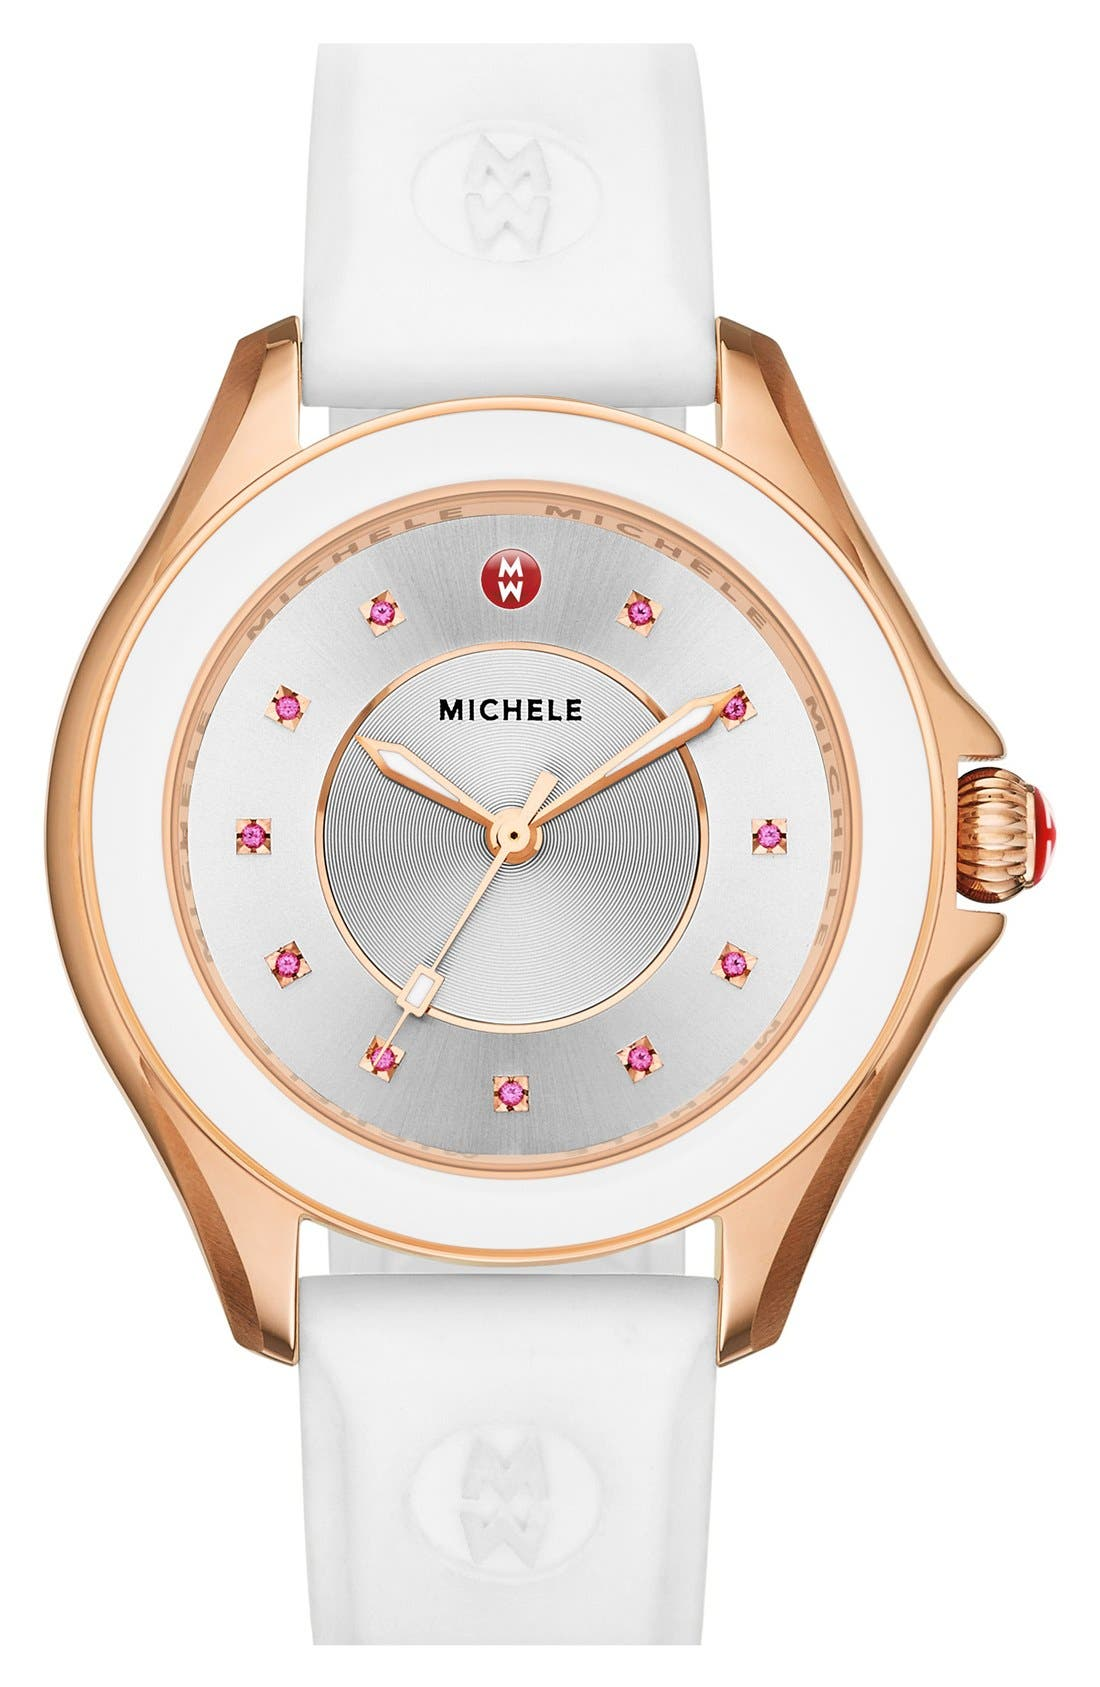 MICHELE Cape Topaz Dial Silicone Strap Watch, 40mm, Main, color, 100